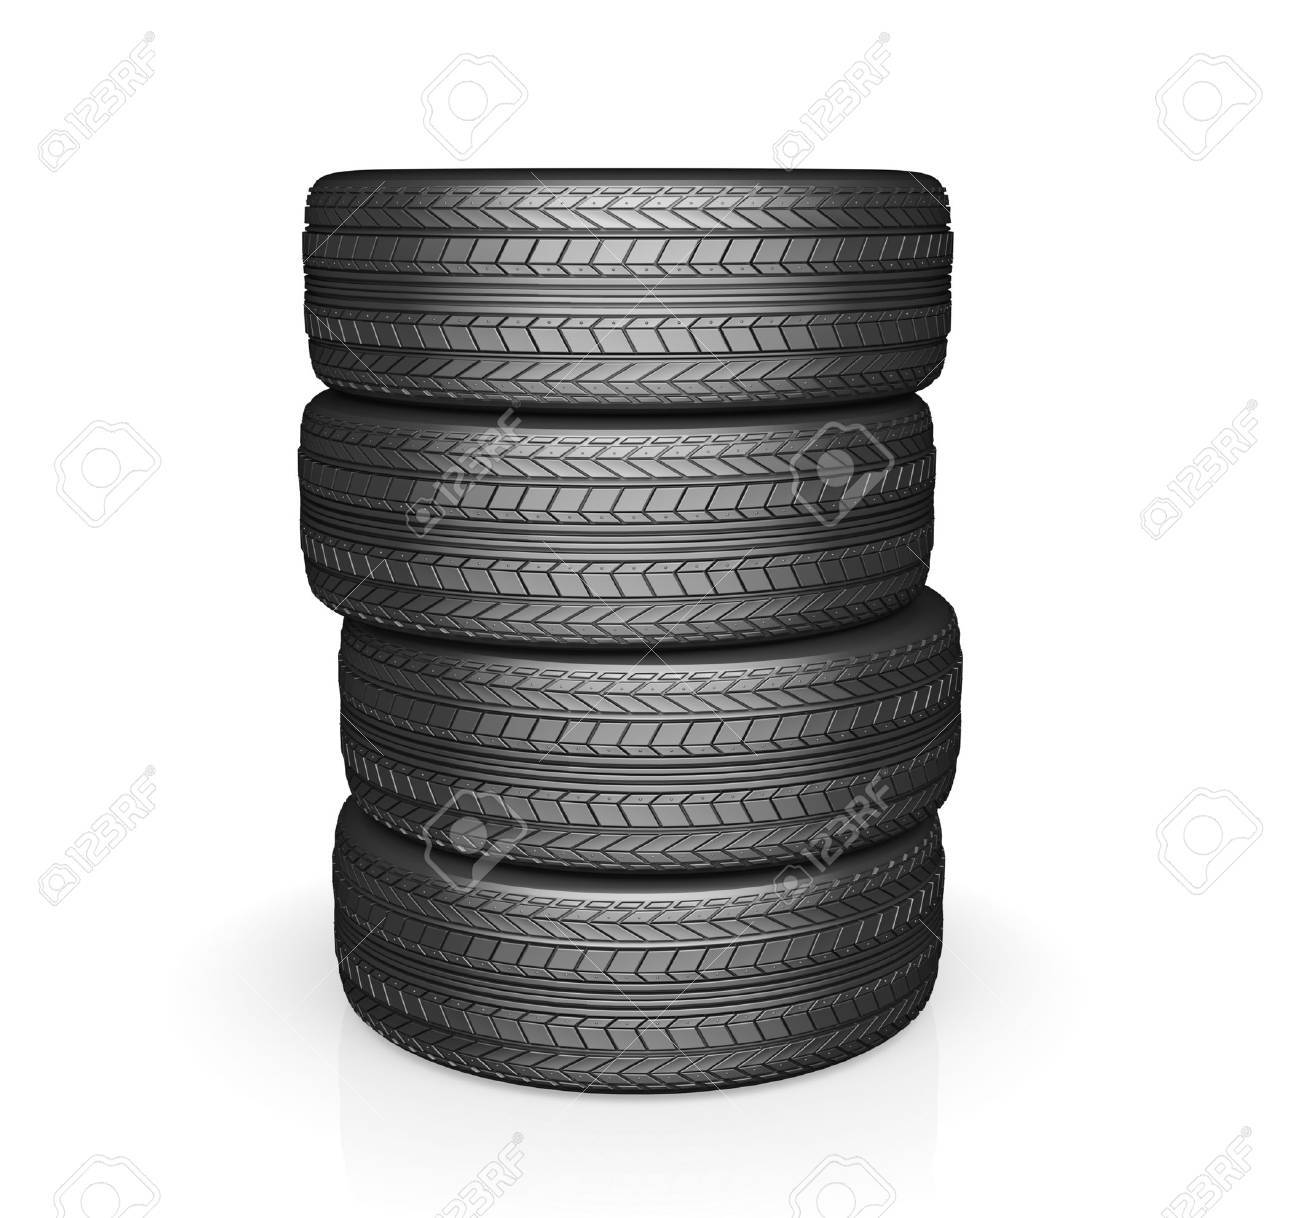 Car tire with protector, isolated on white background - 44690704